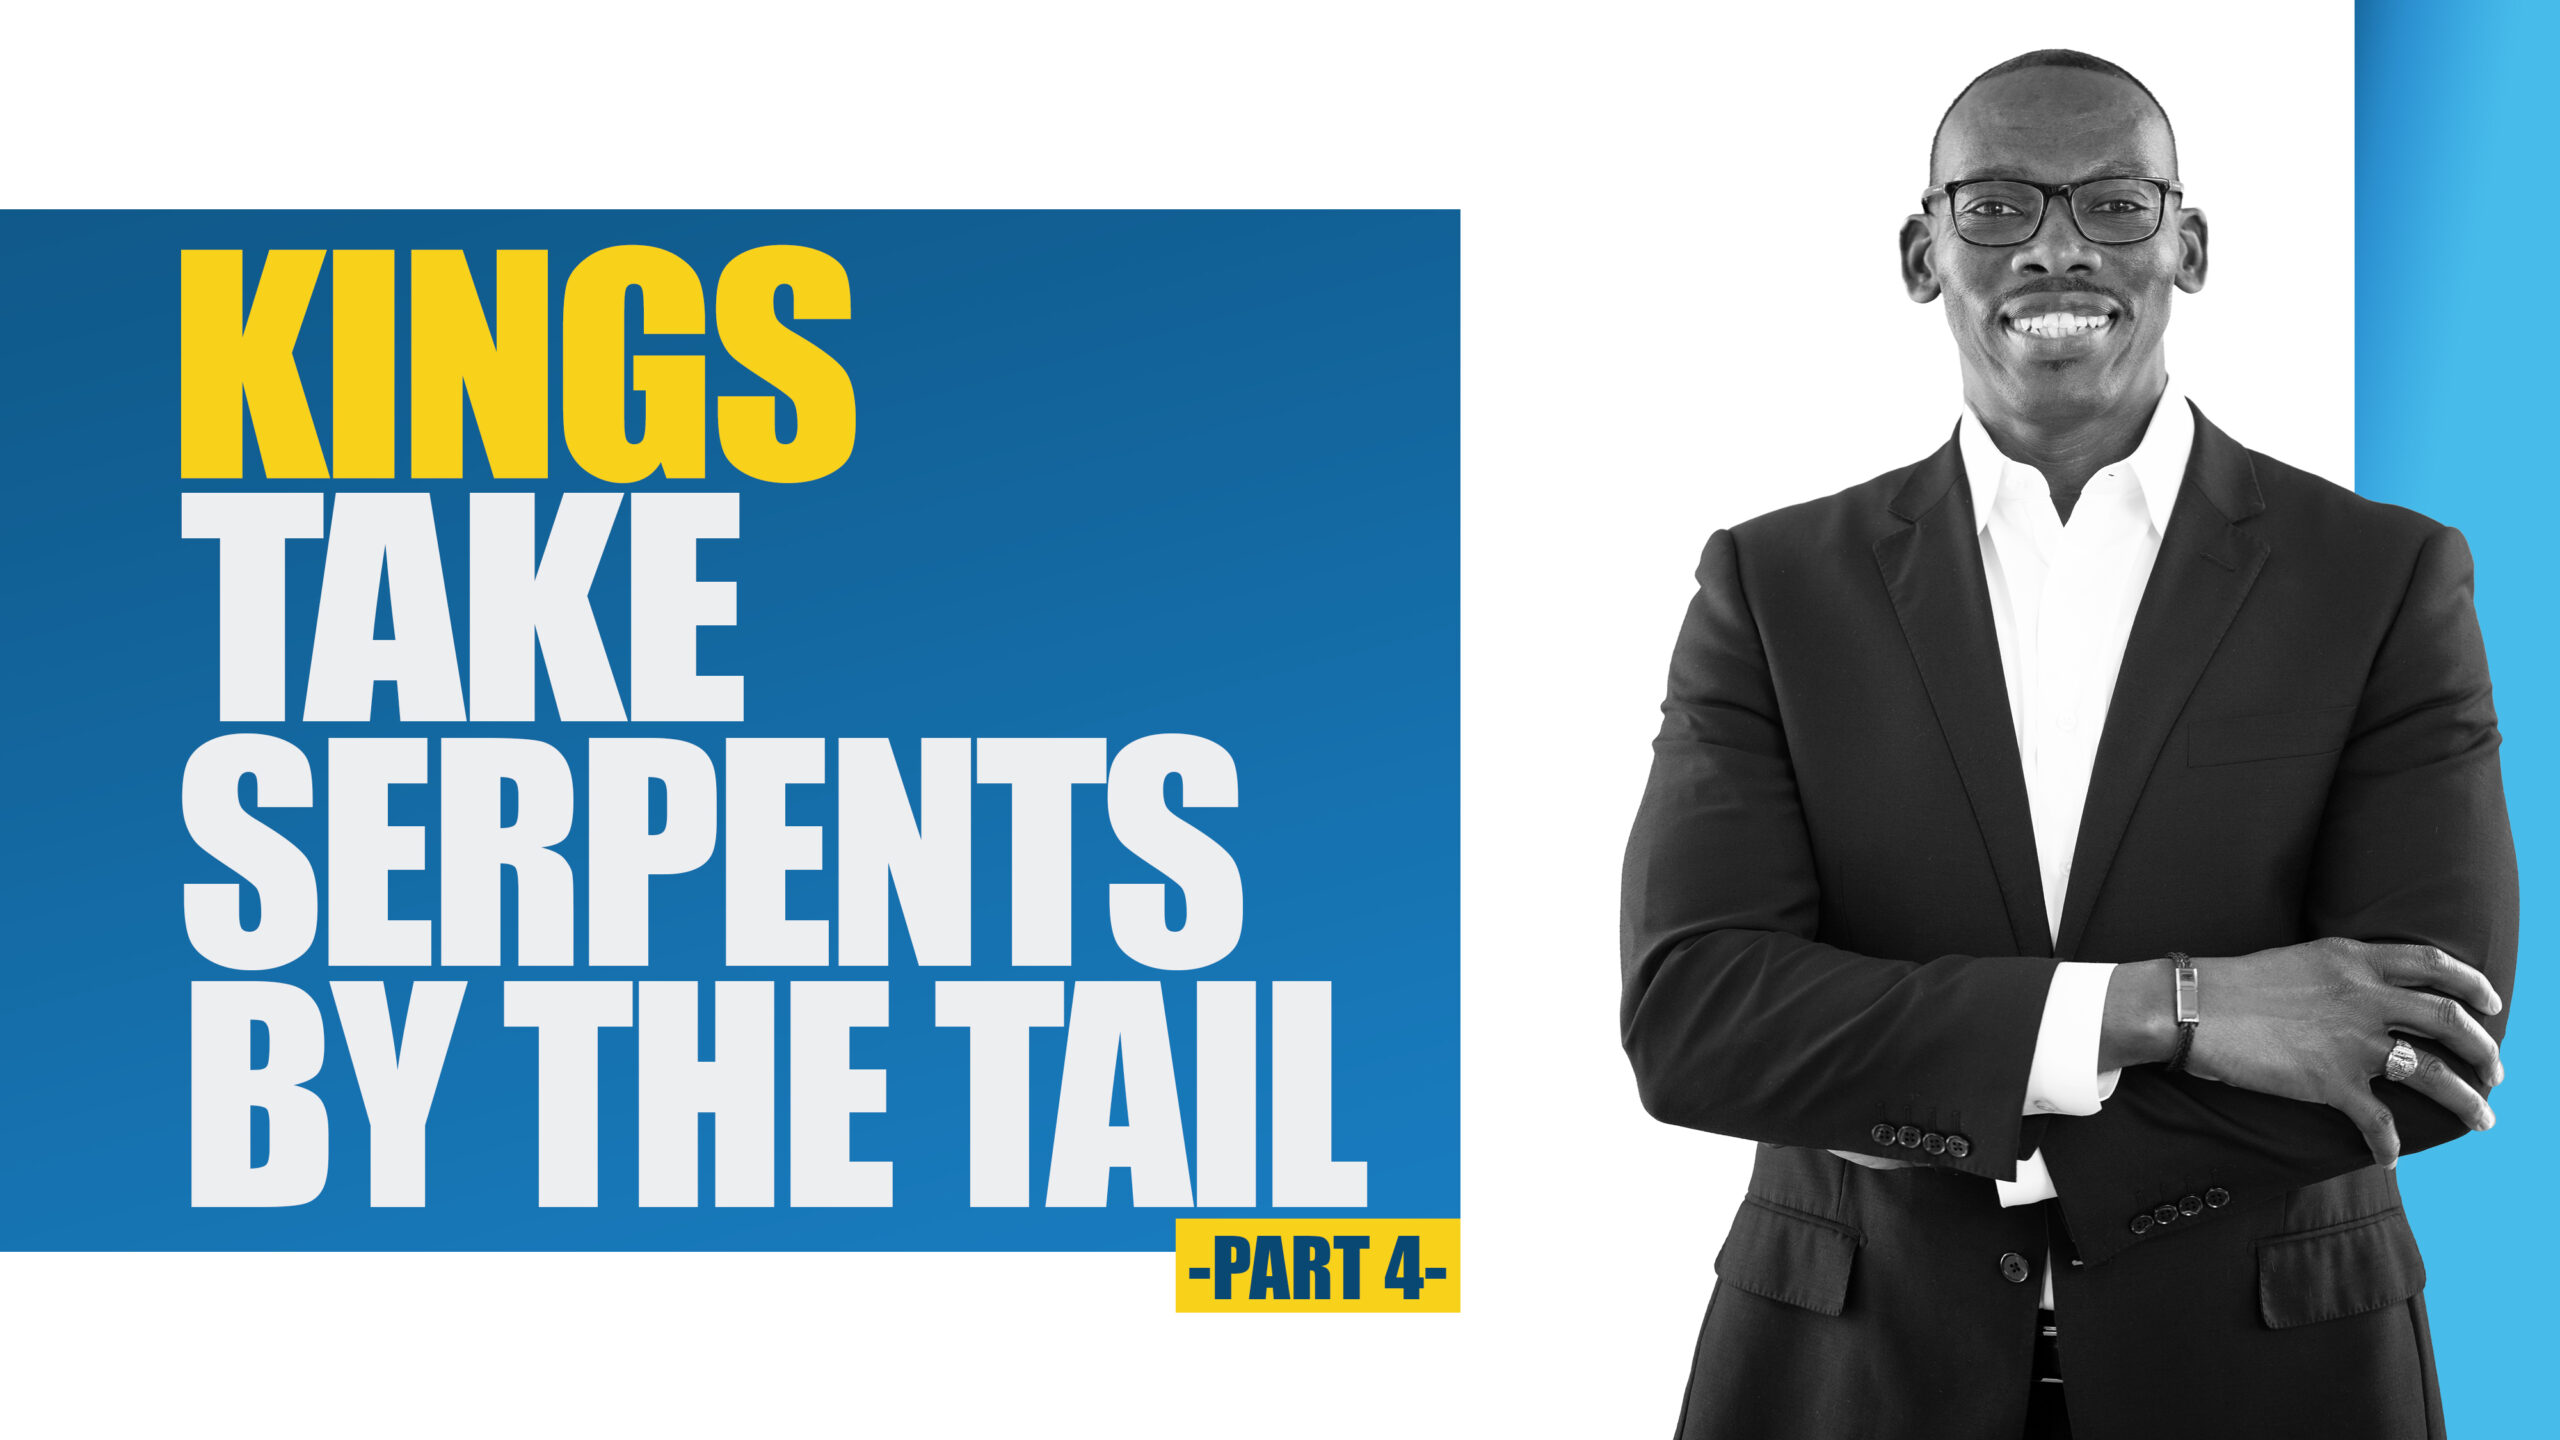 Kings Take Serpents By The Tail (Part 4)